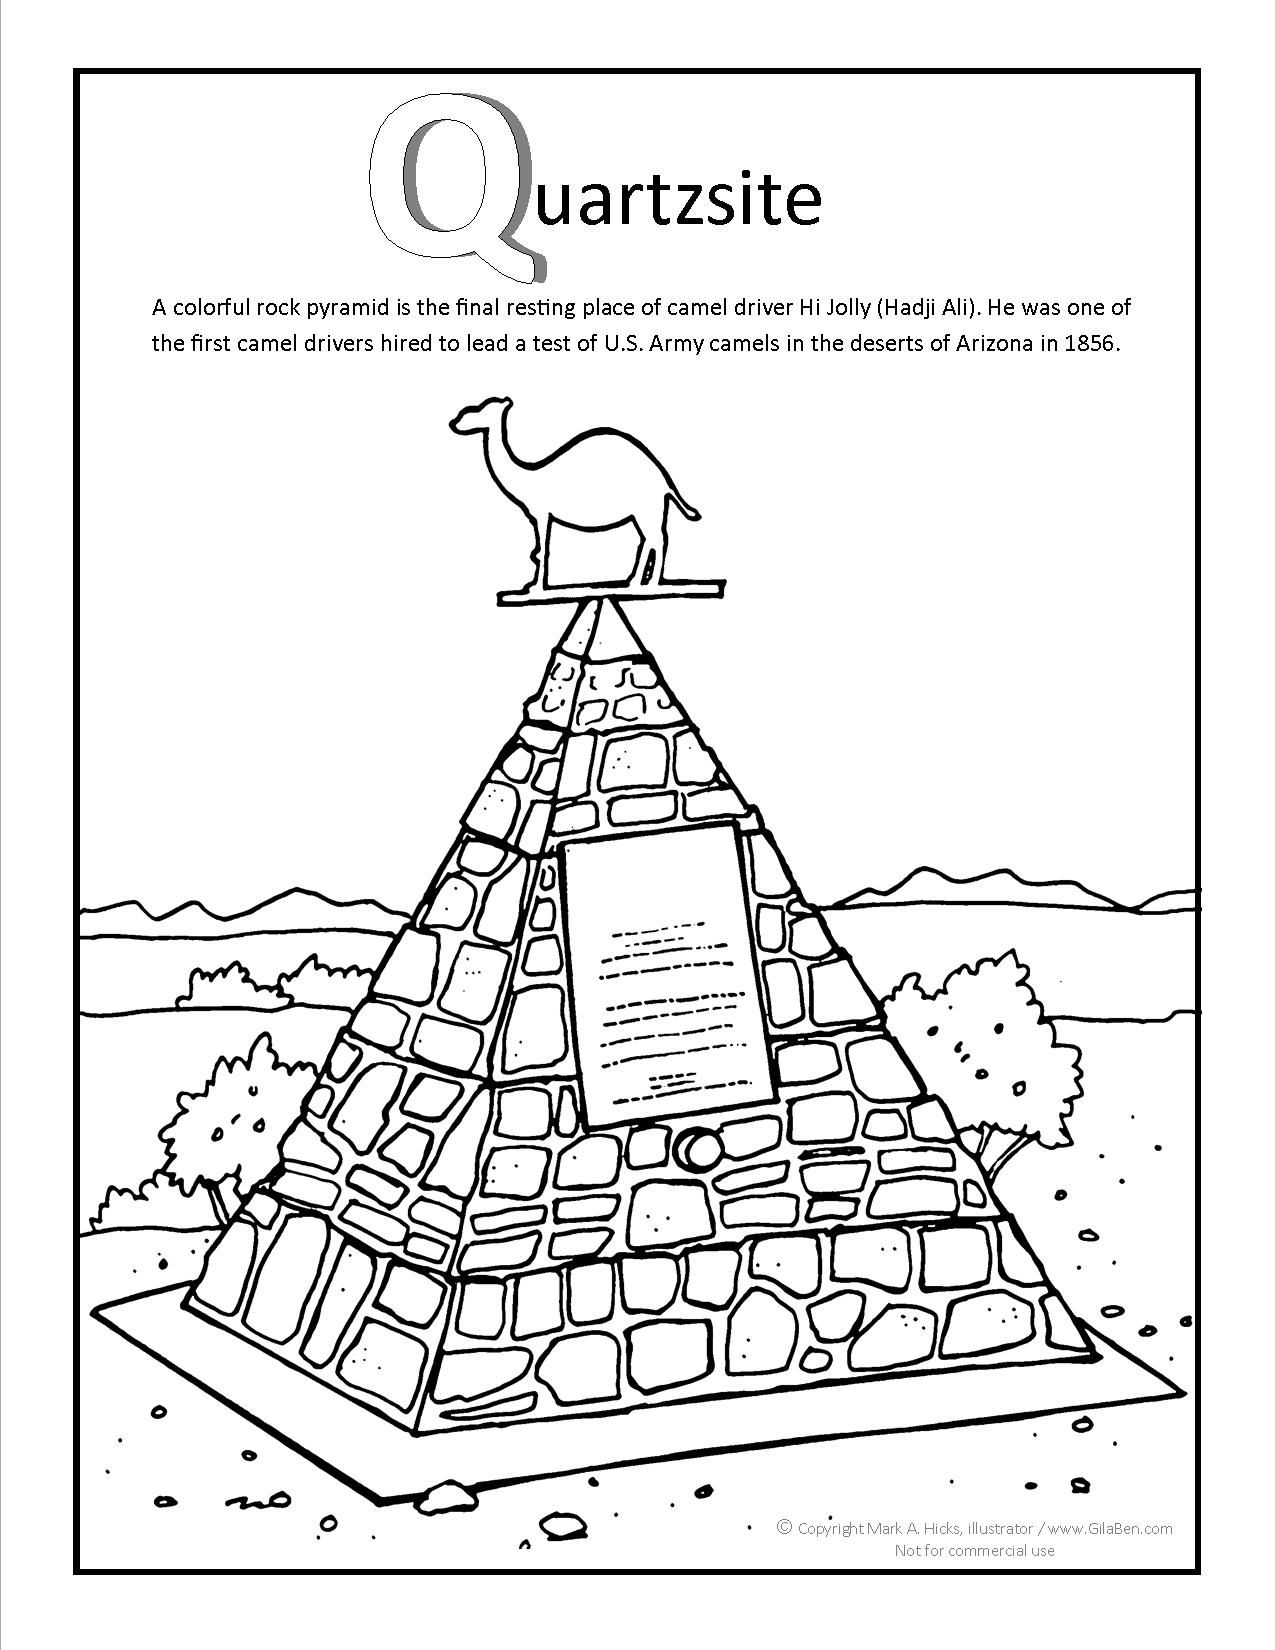 quartsite arizona coloring page at gilaben com arizona coloring